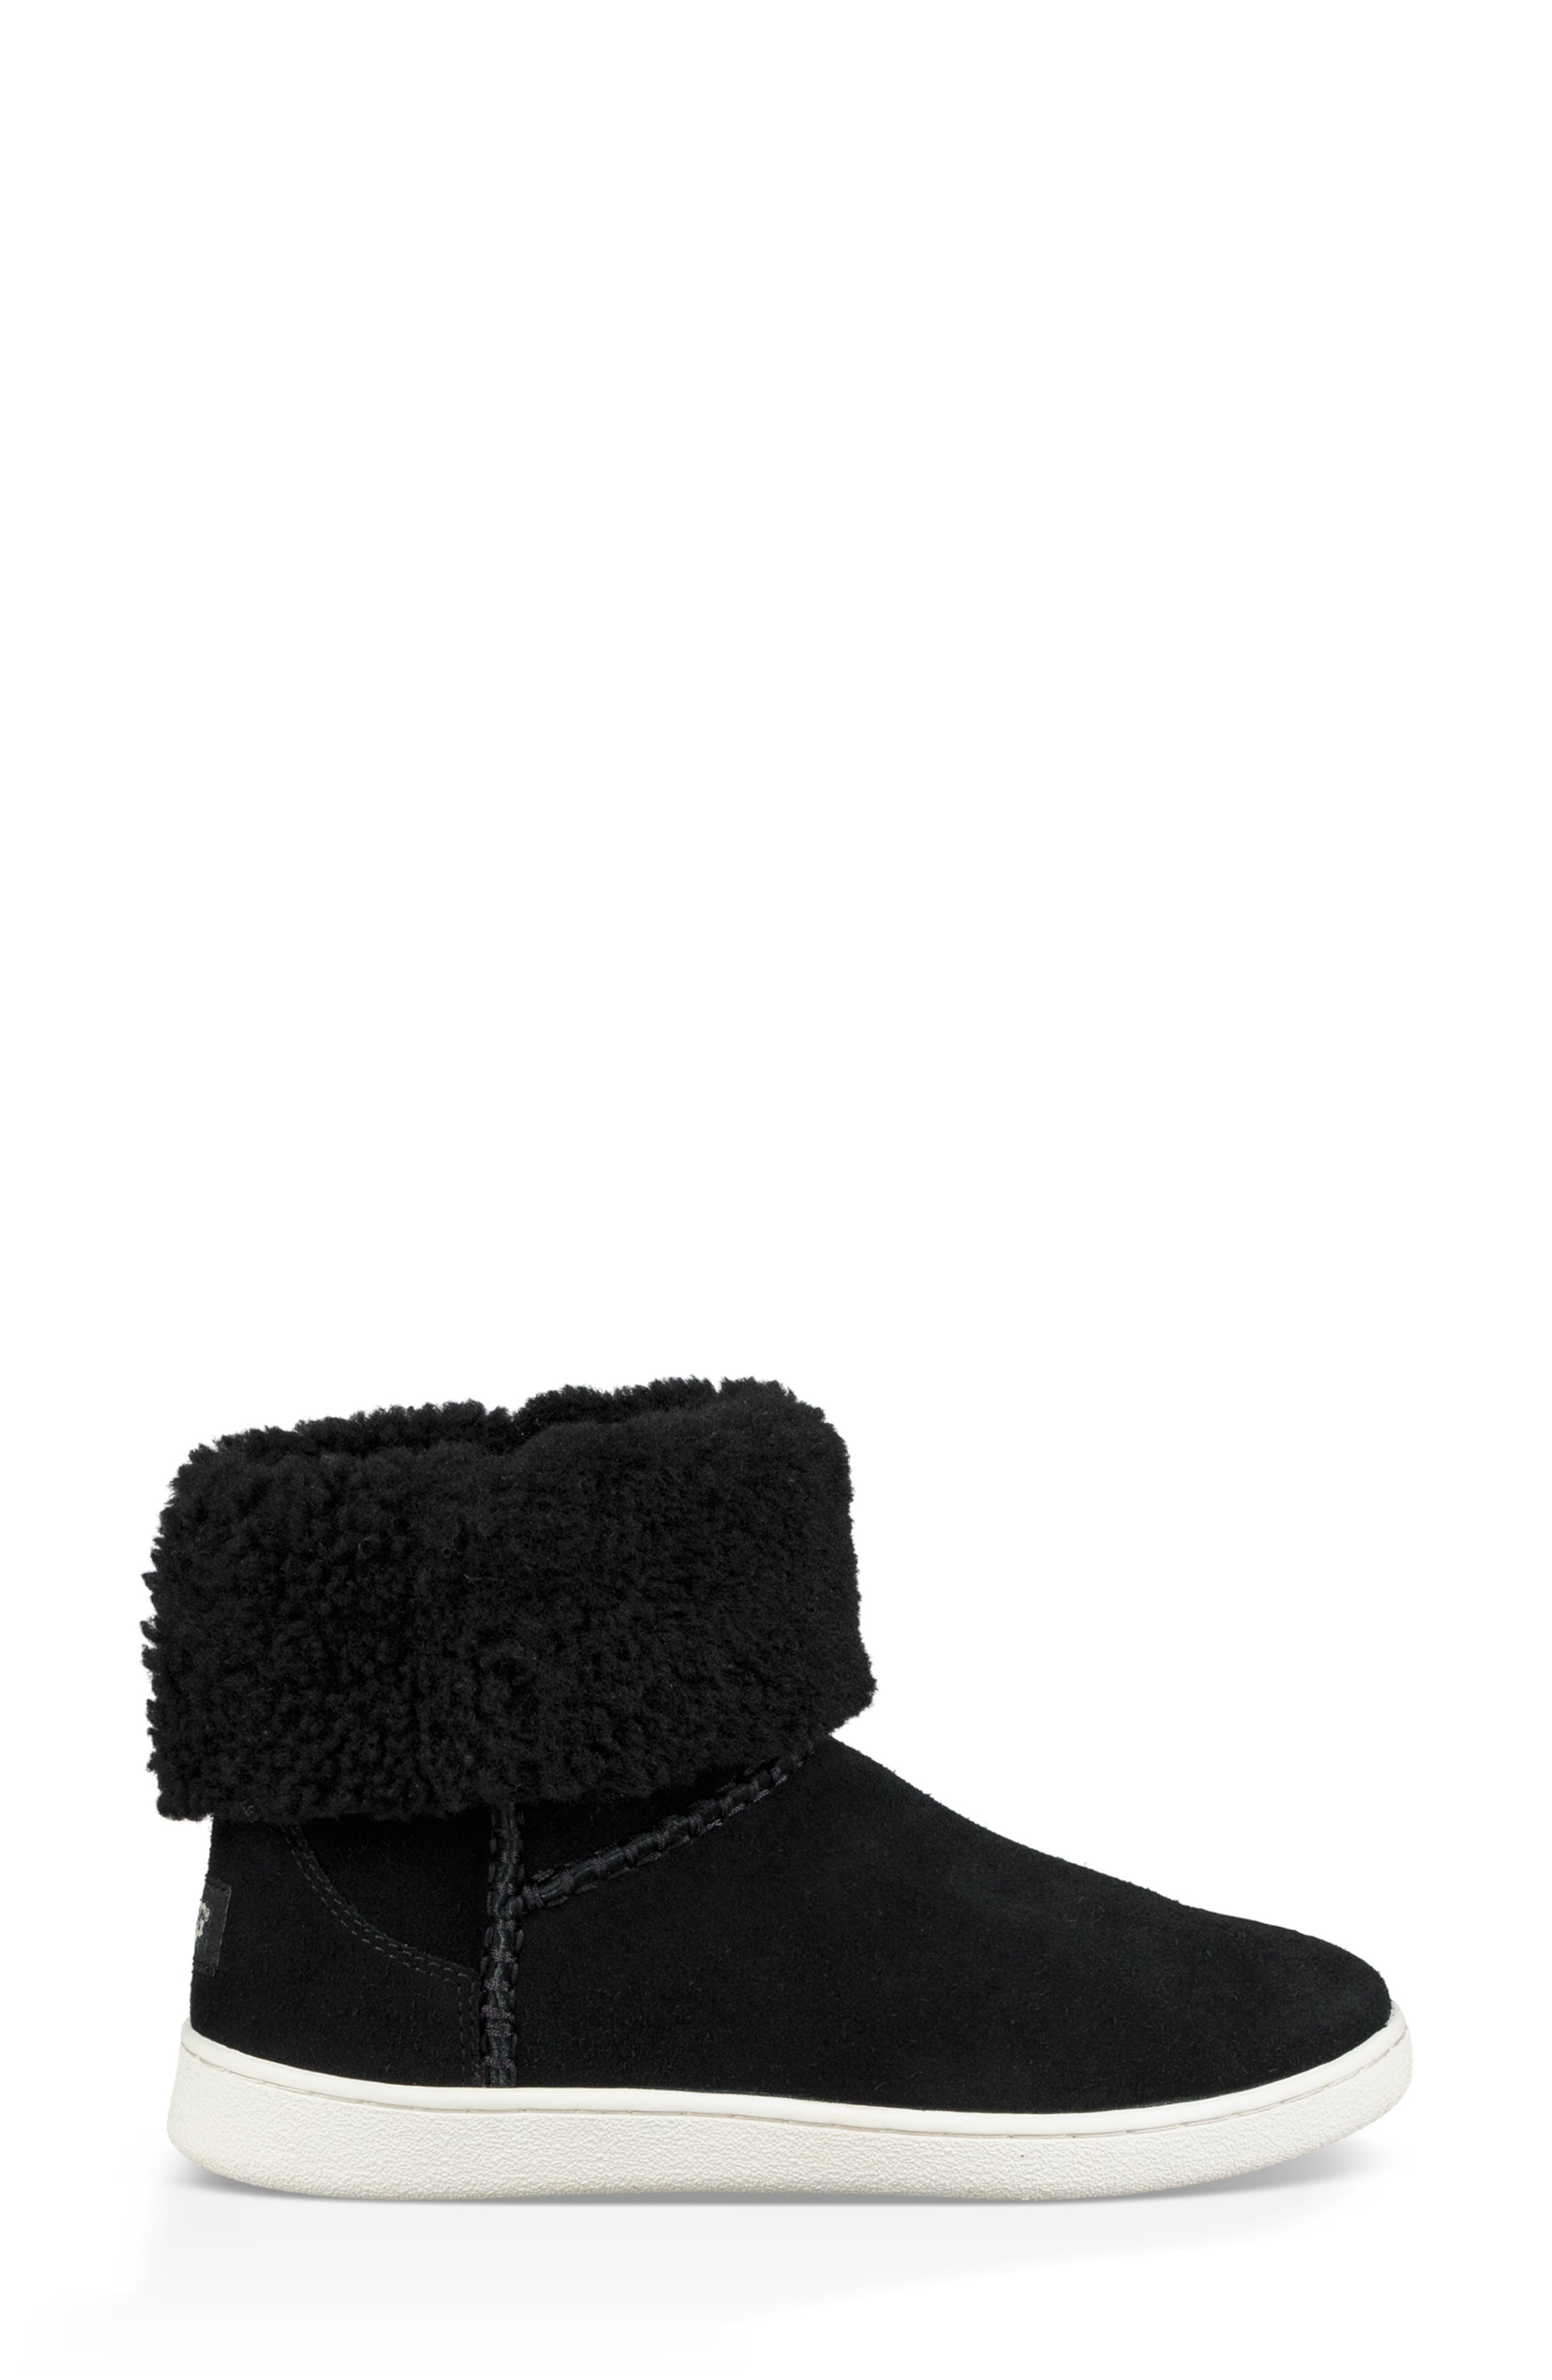 UGG<SUP>®</SUP>, Mika Classic Genuine Shearling Sneaker, Alternate thumbnail 4, color, BLACK